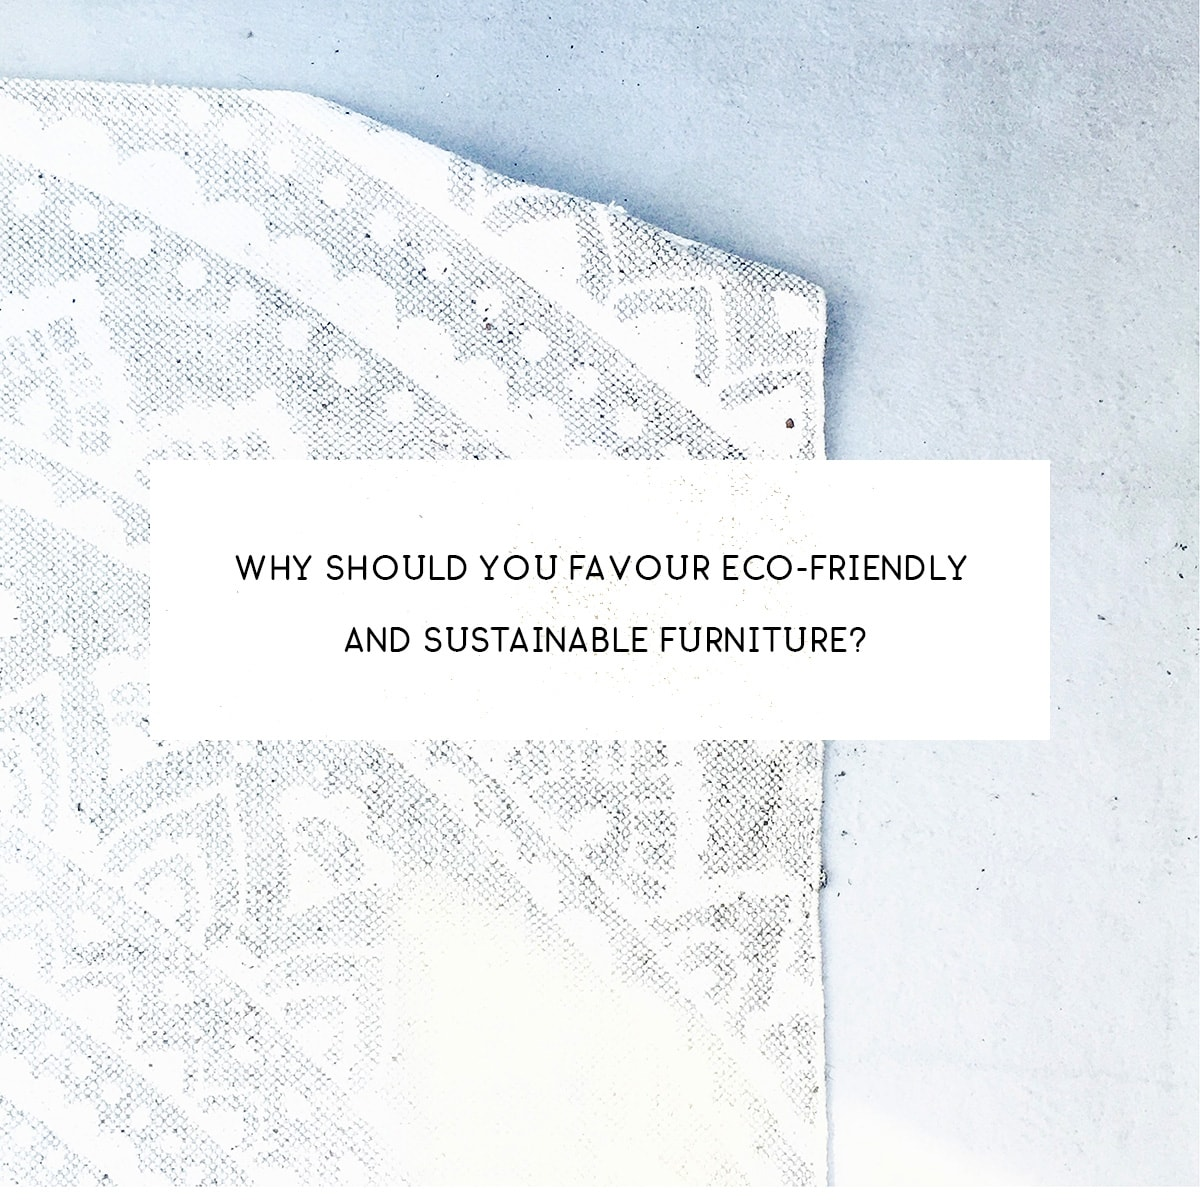 Why should you favour eco-friendly and sustainable furniture? Image